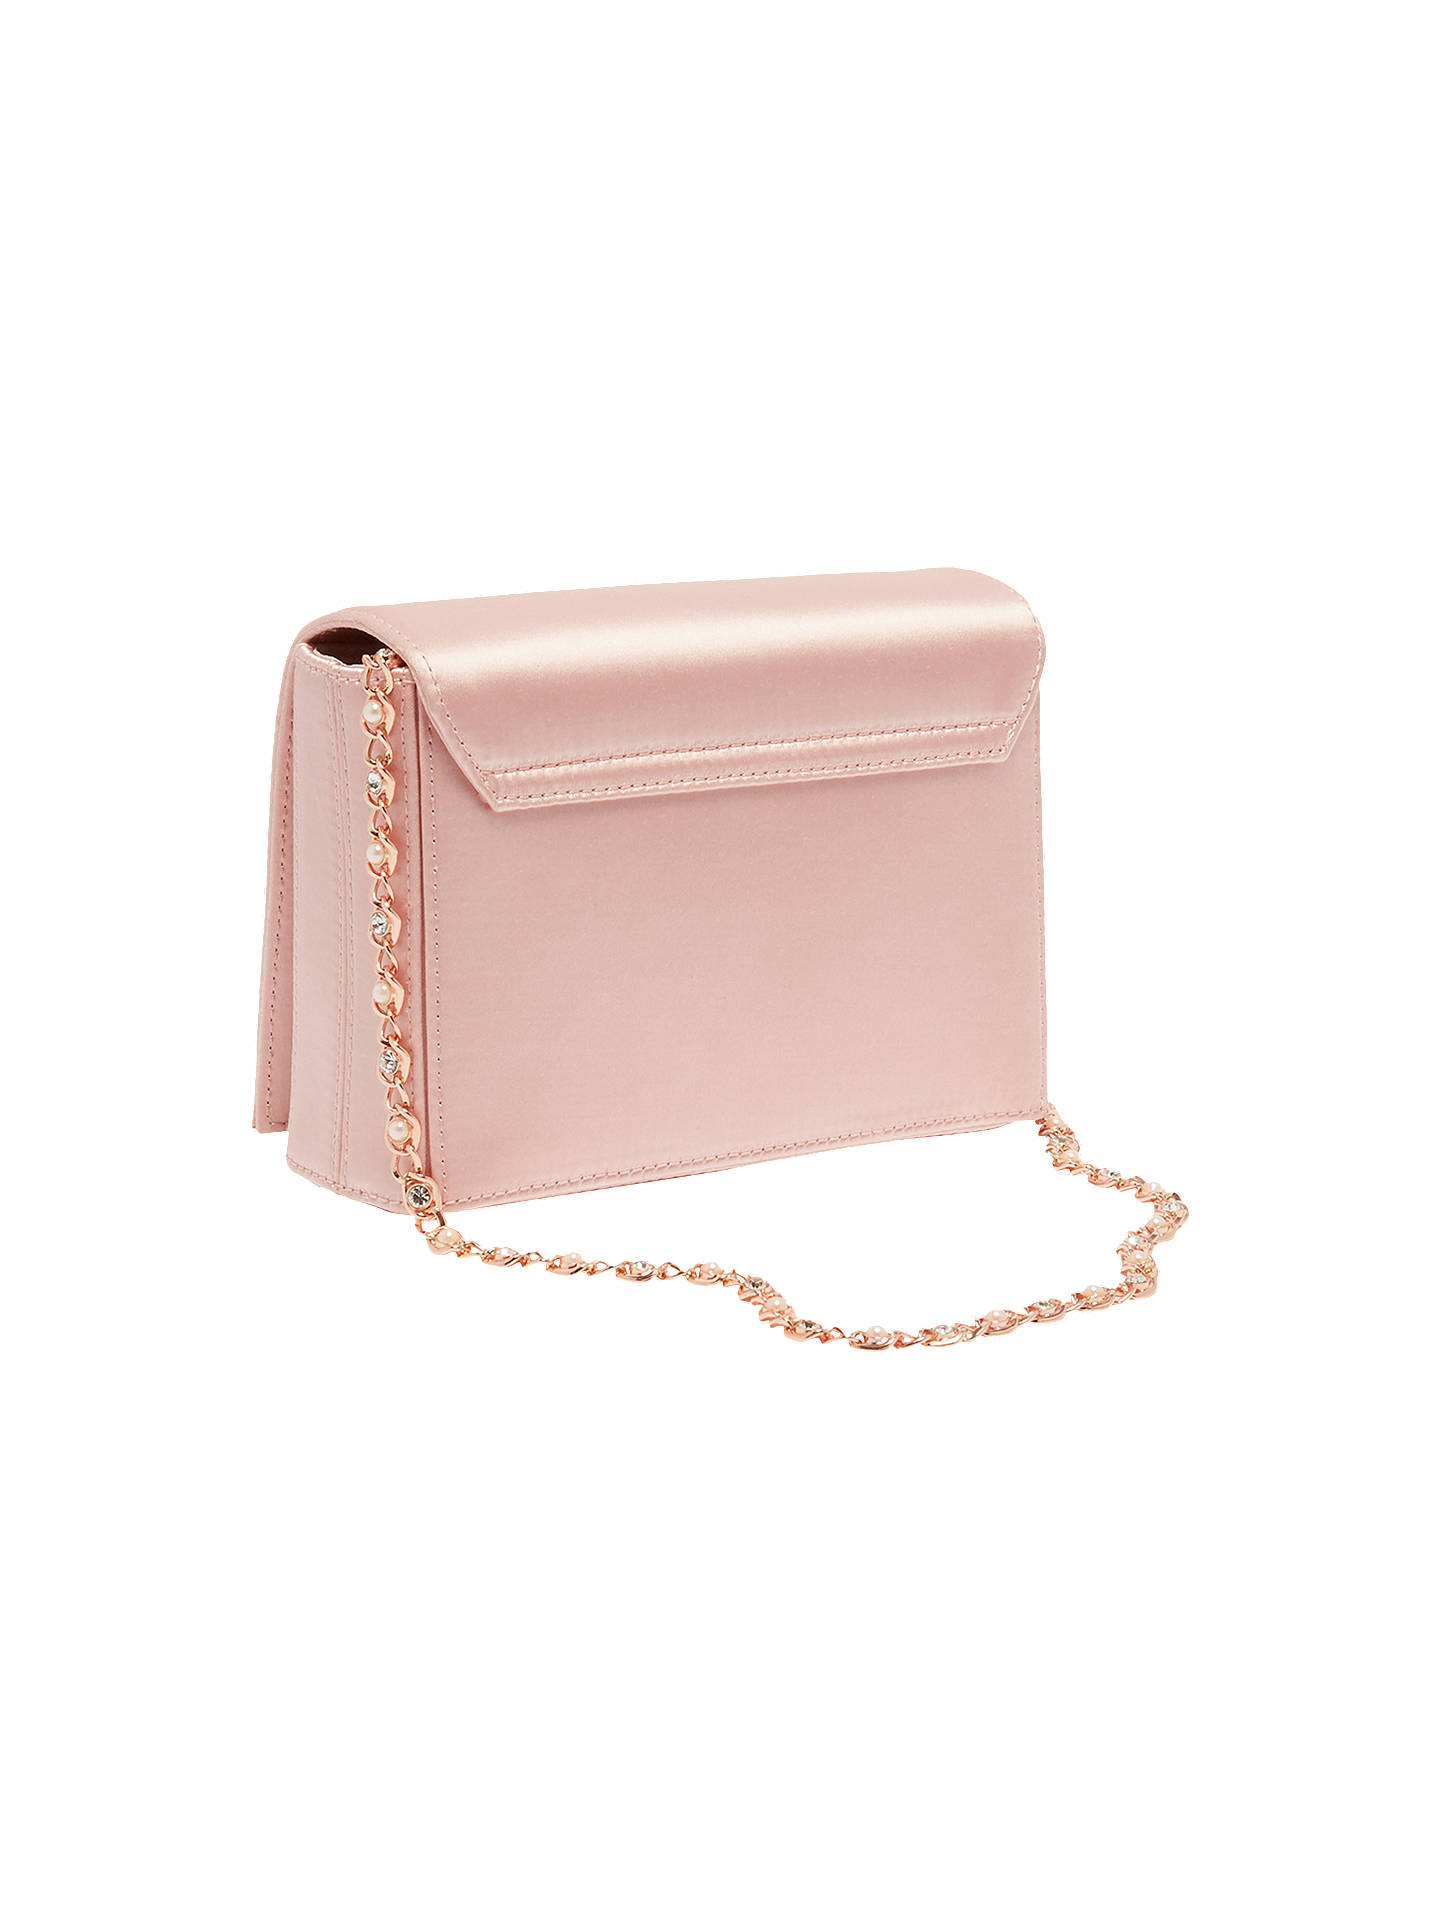 5eacc1ade515 Ted Baker Selinaa Clutch Bag at John Lewis   Partners